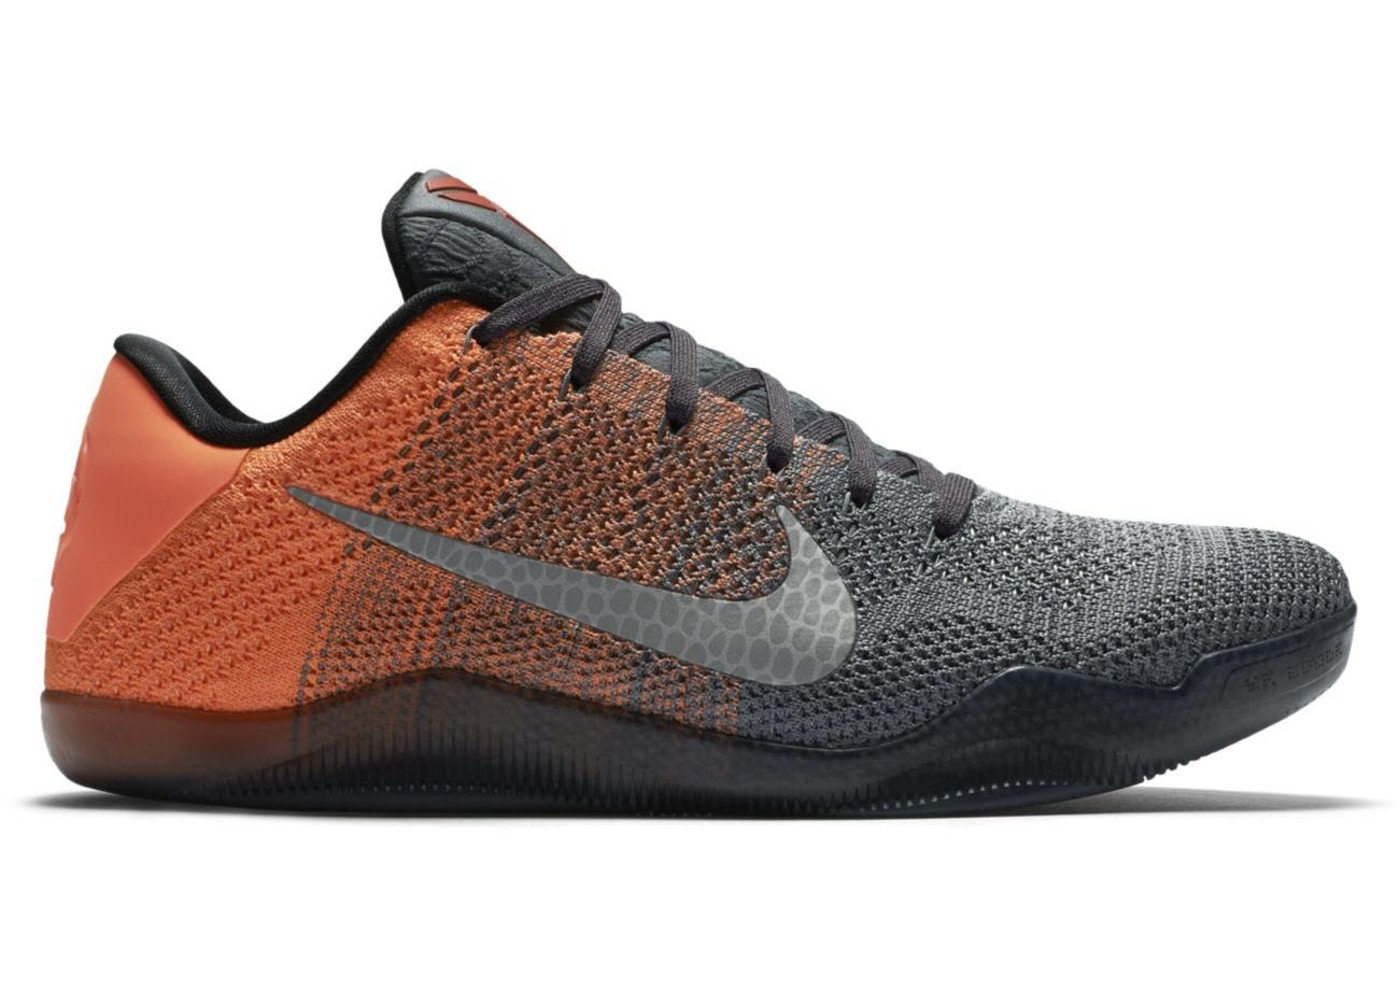 quality design 4a820 57fd0 Kobe 11 Elite Low Easter - 822675-078